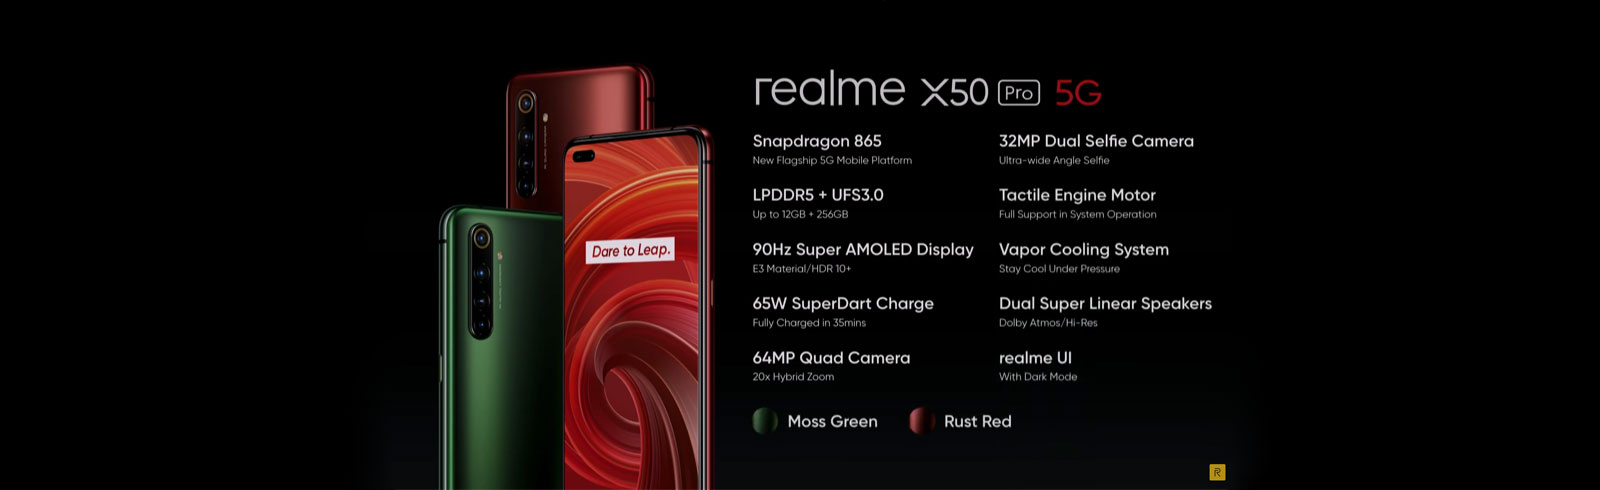 Realme X50 Pro 5G is official, pricing starts at USD 529